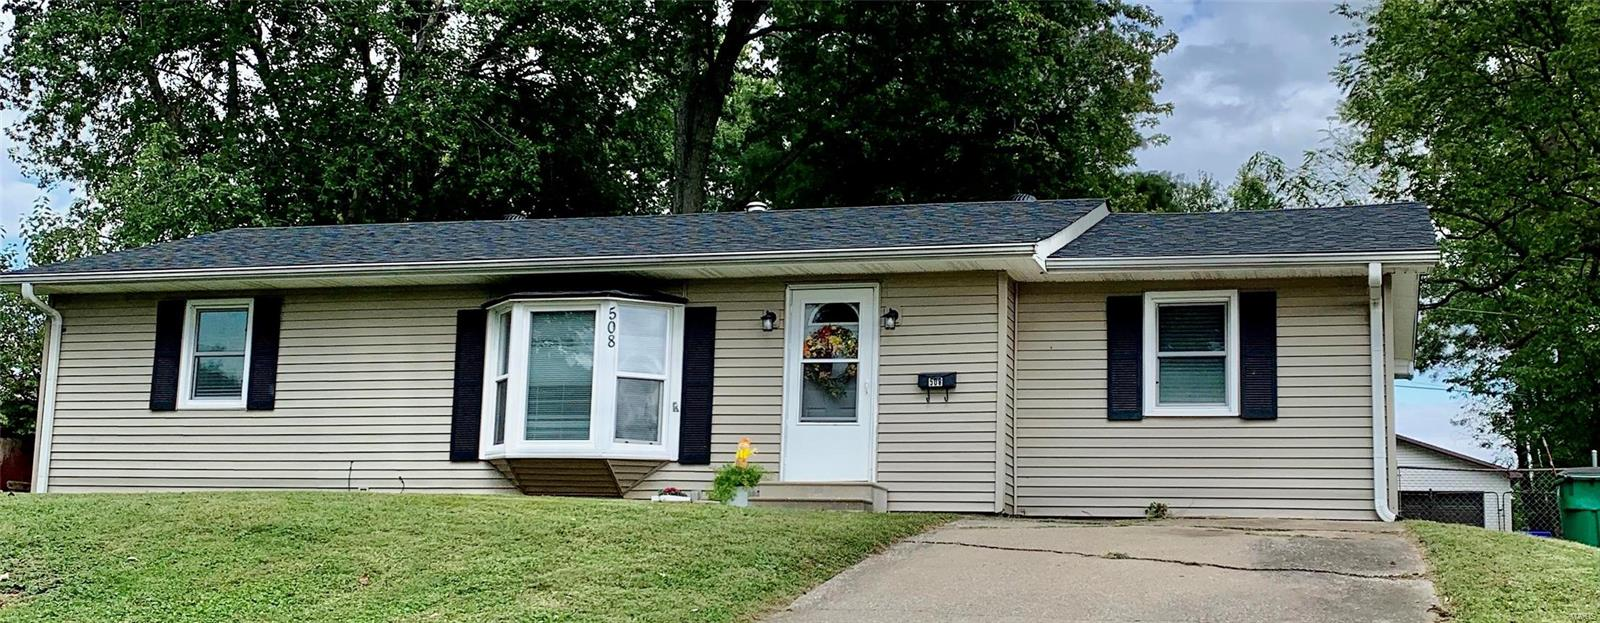 508 Keeley Avenue Property Photo - Scott City, MO real estate listing